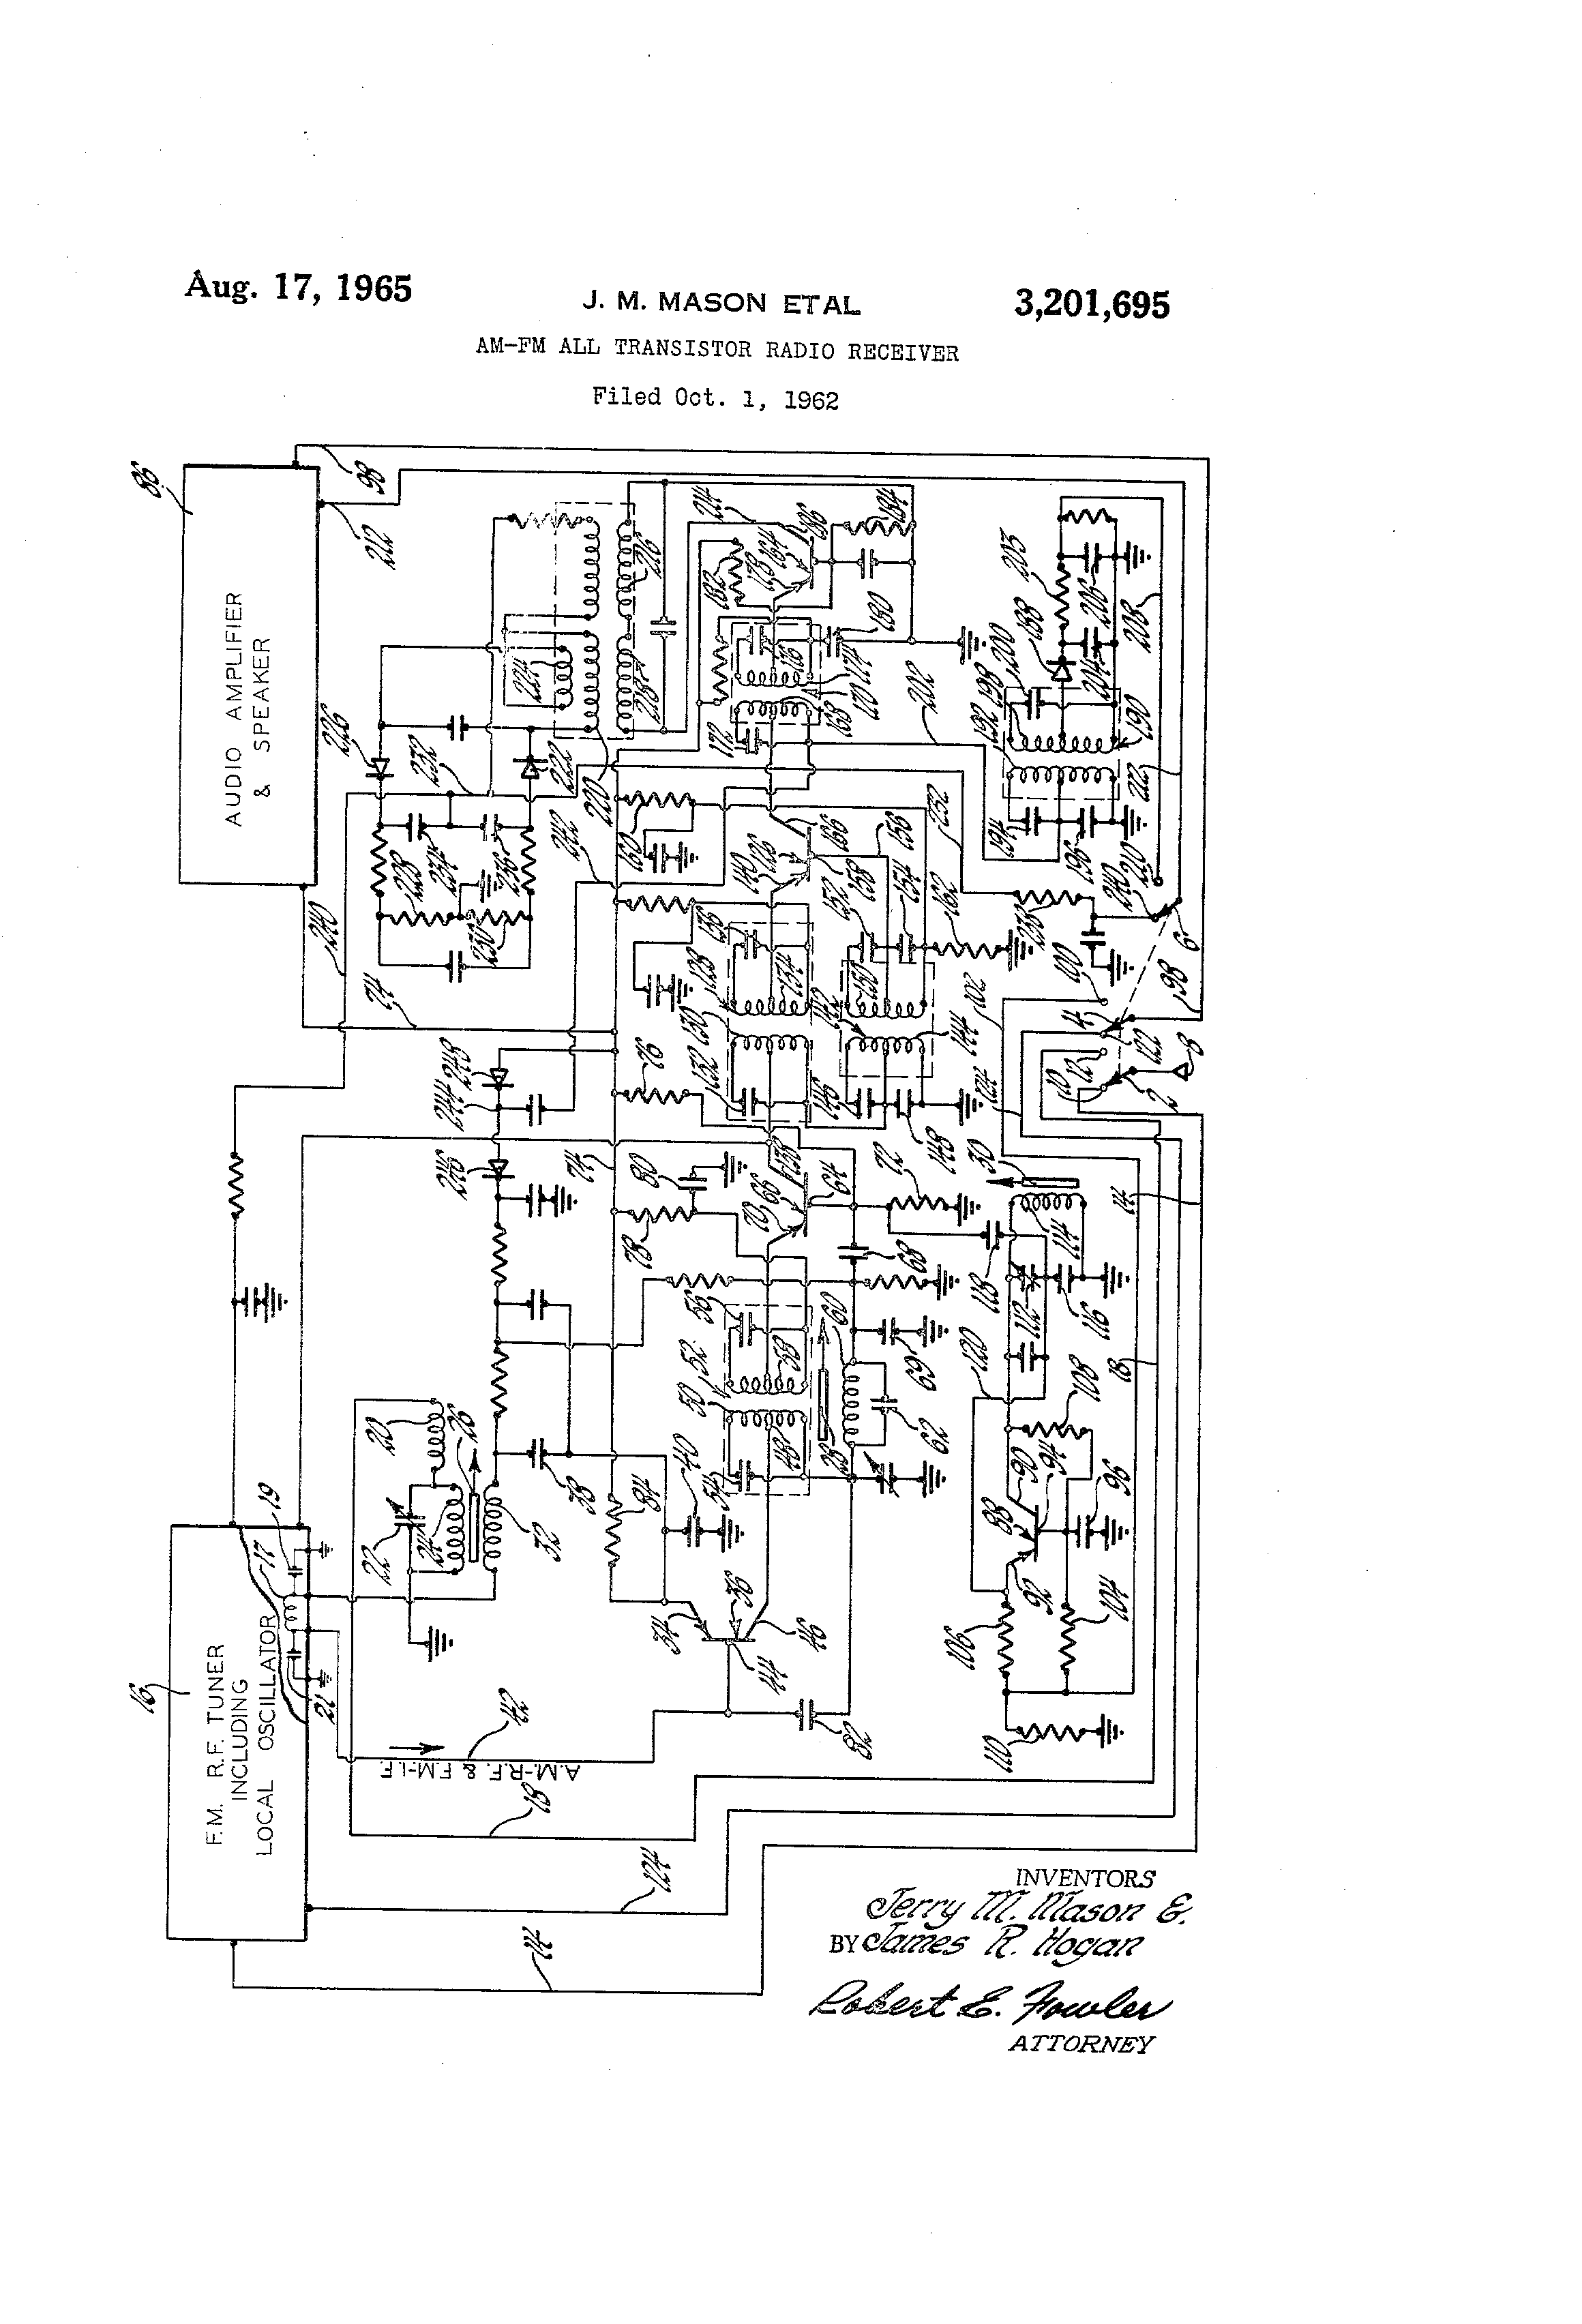 circuit diagram of transistor radio receiver